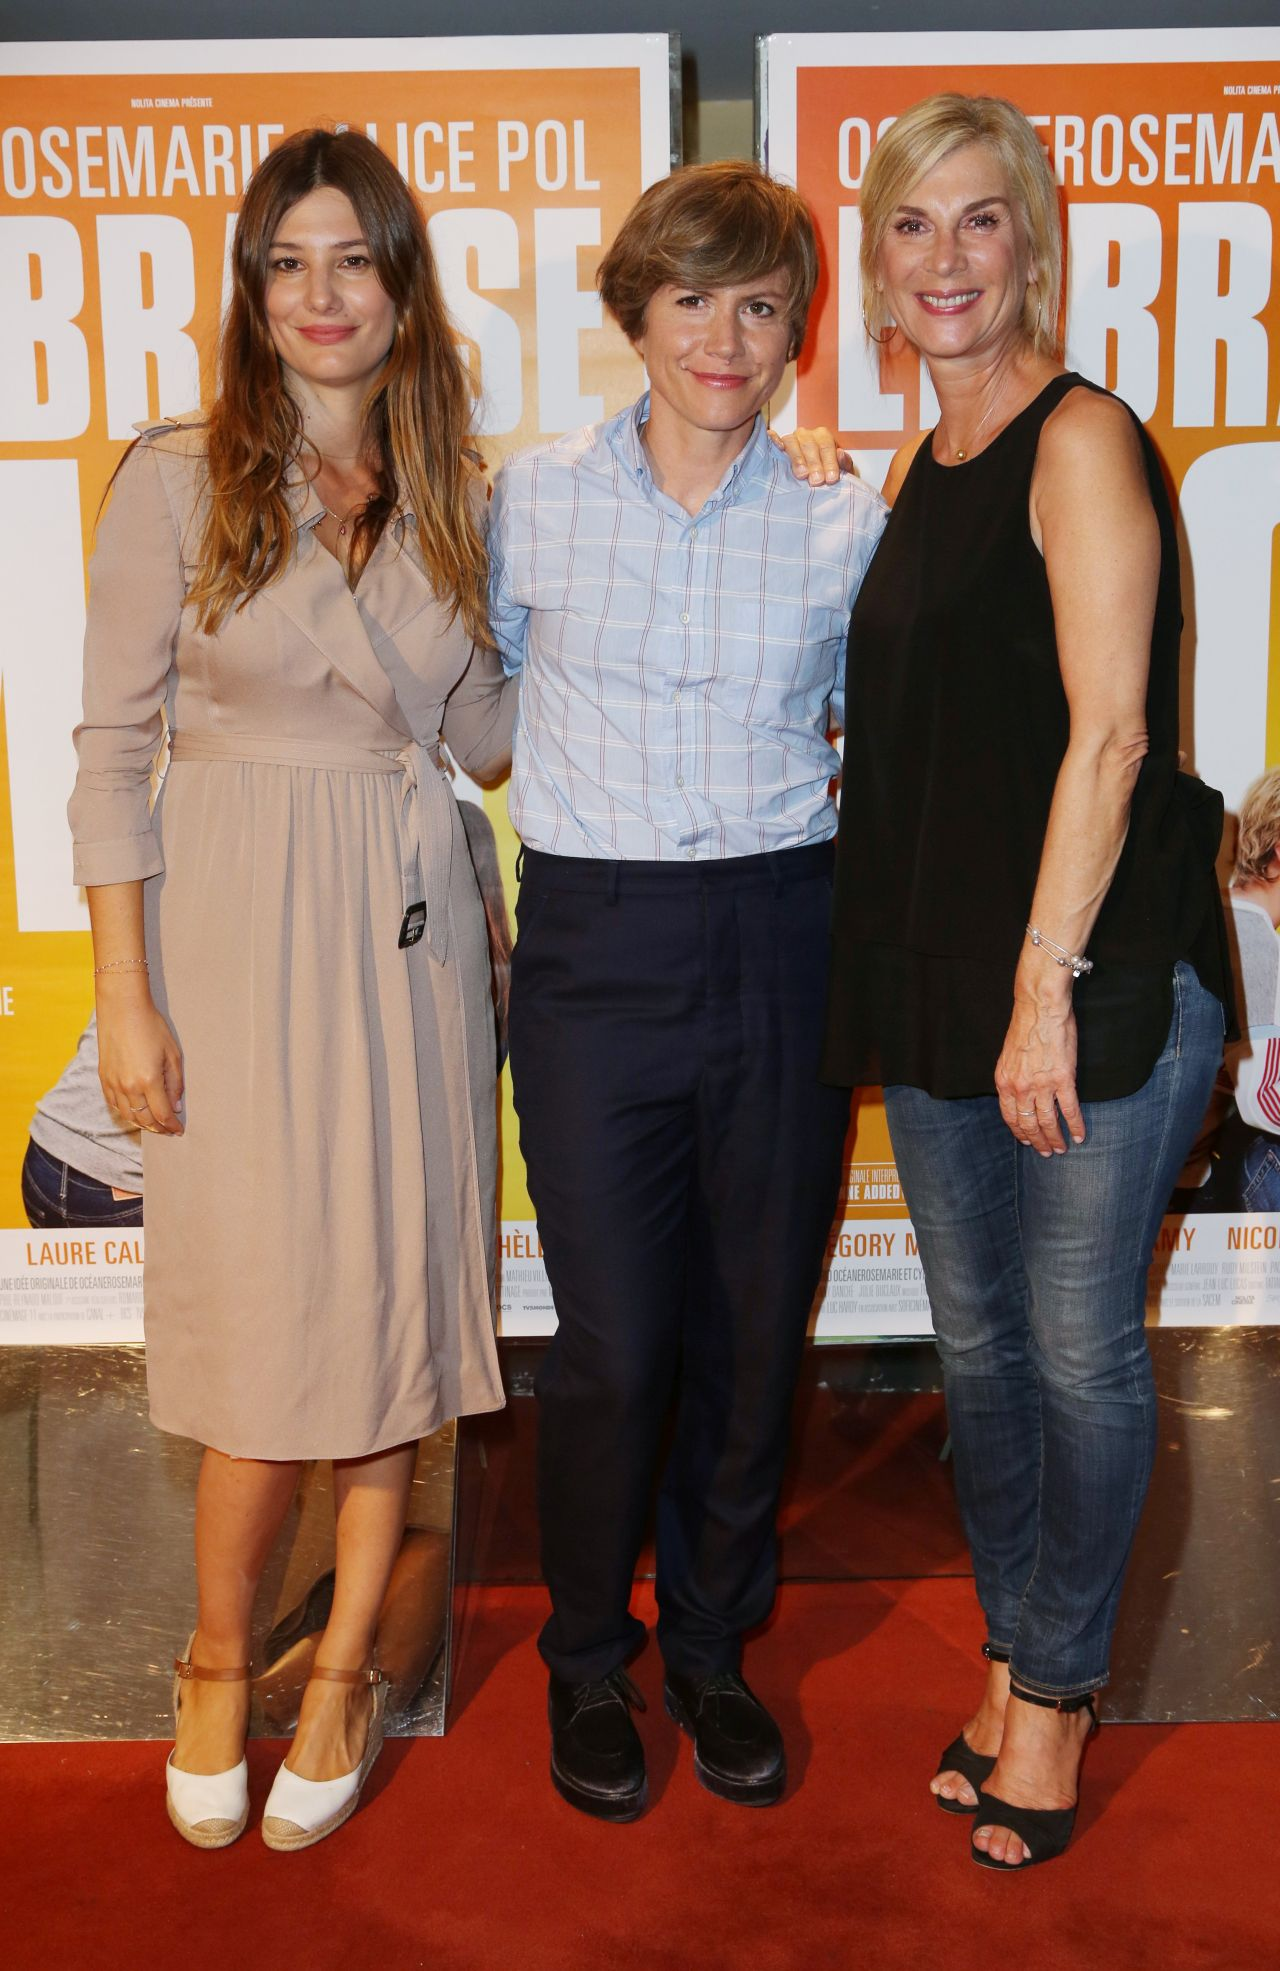 Alice pol embrasse moimovie premiere in paris naked (52 images)